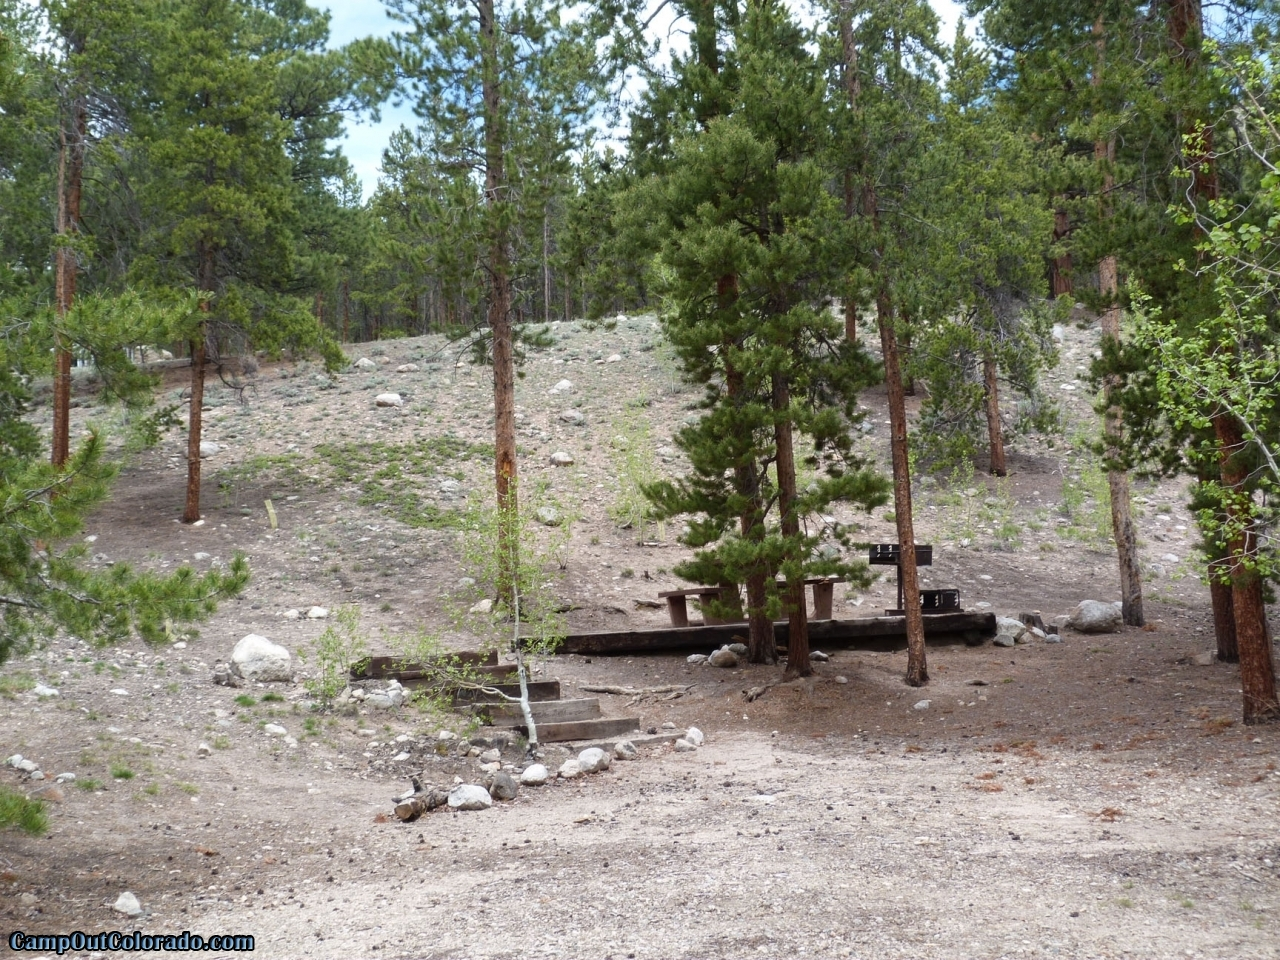 camp-out-colorado-lakeview-campground-make-shift-campsite